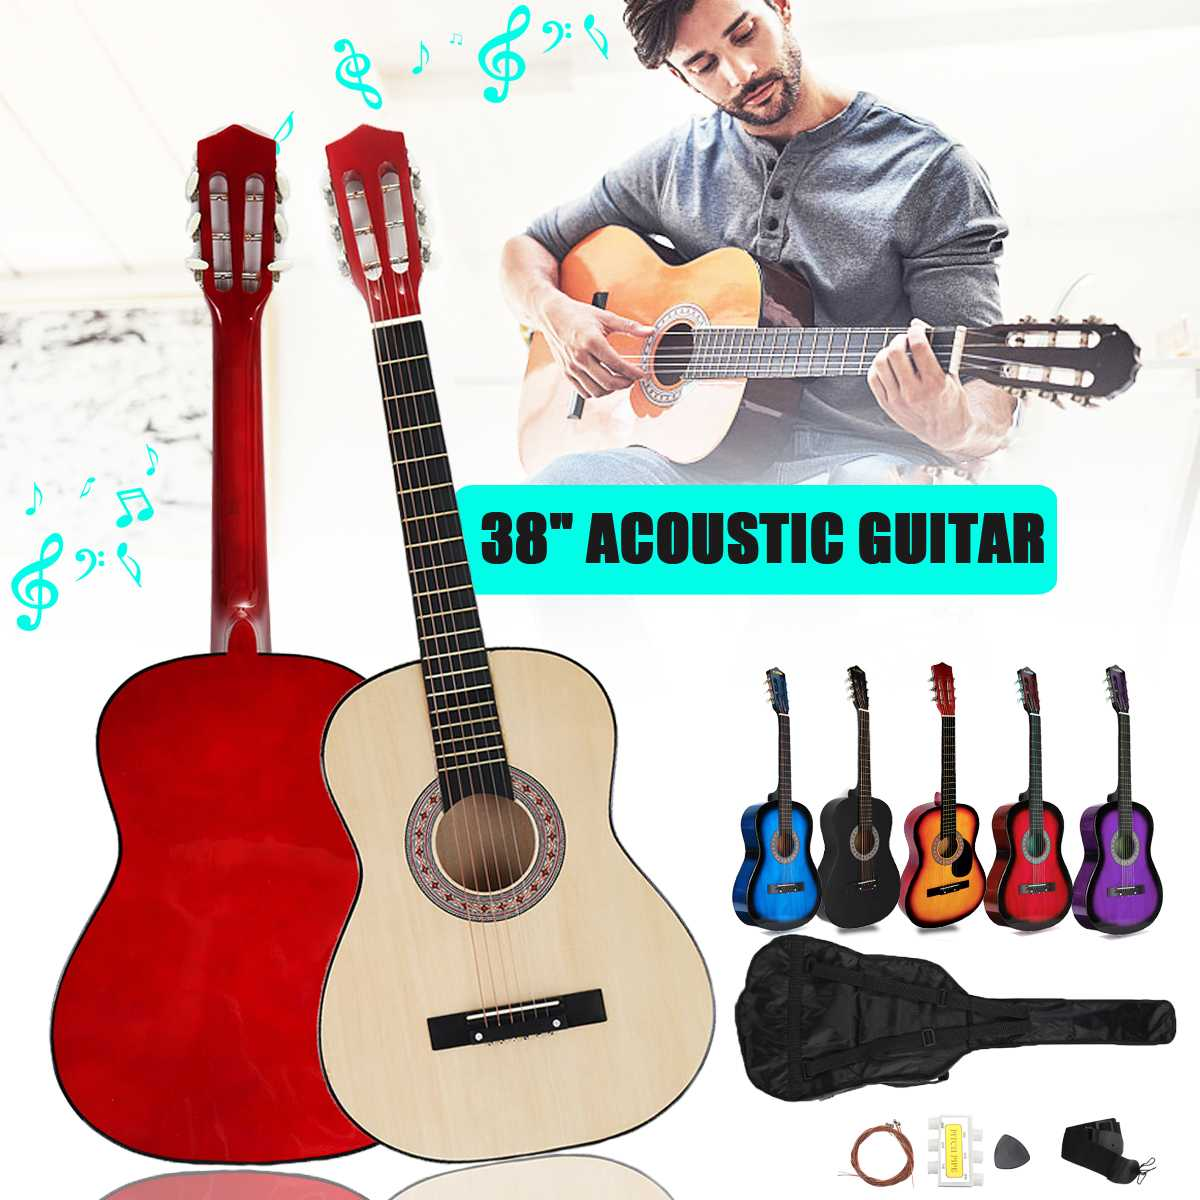 6 Color 38 Inch Modern Wooden Folk Acoustic Guitarra Bass Guitar Ukulele With Case Bag For Musical Instruments Lover(China)